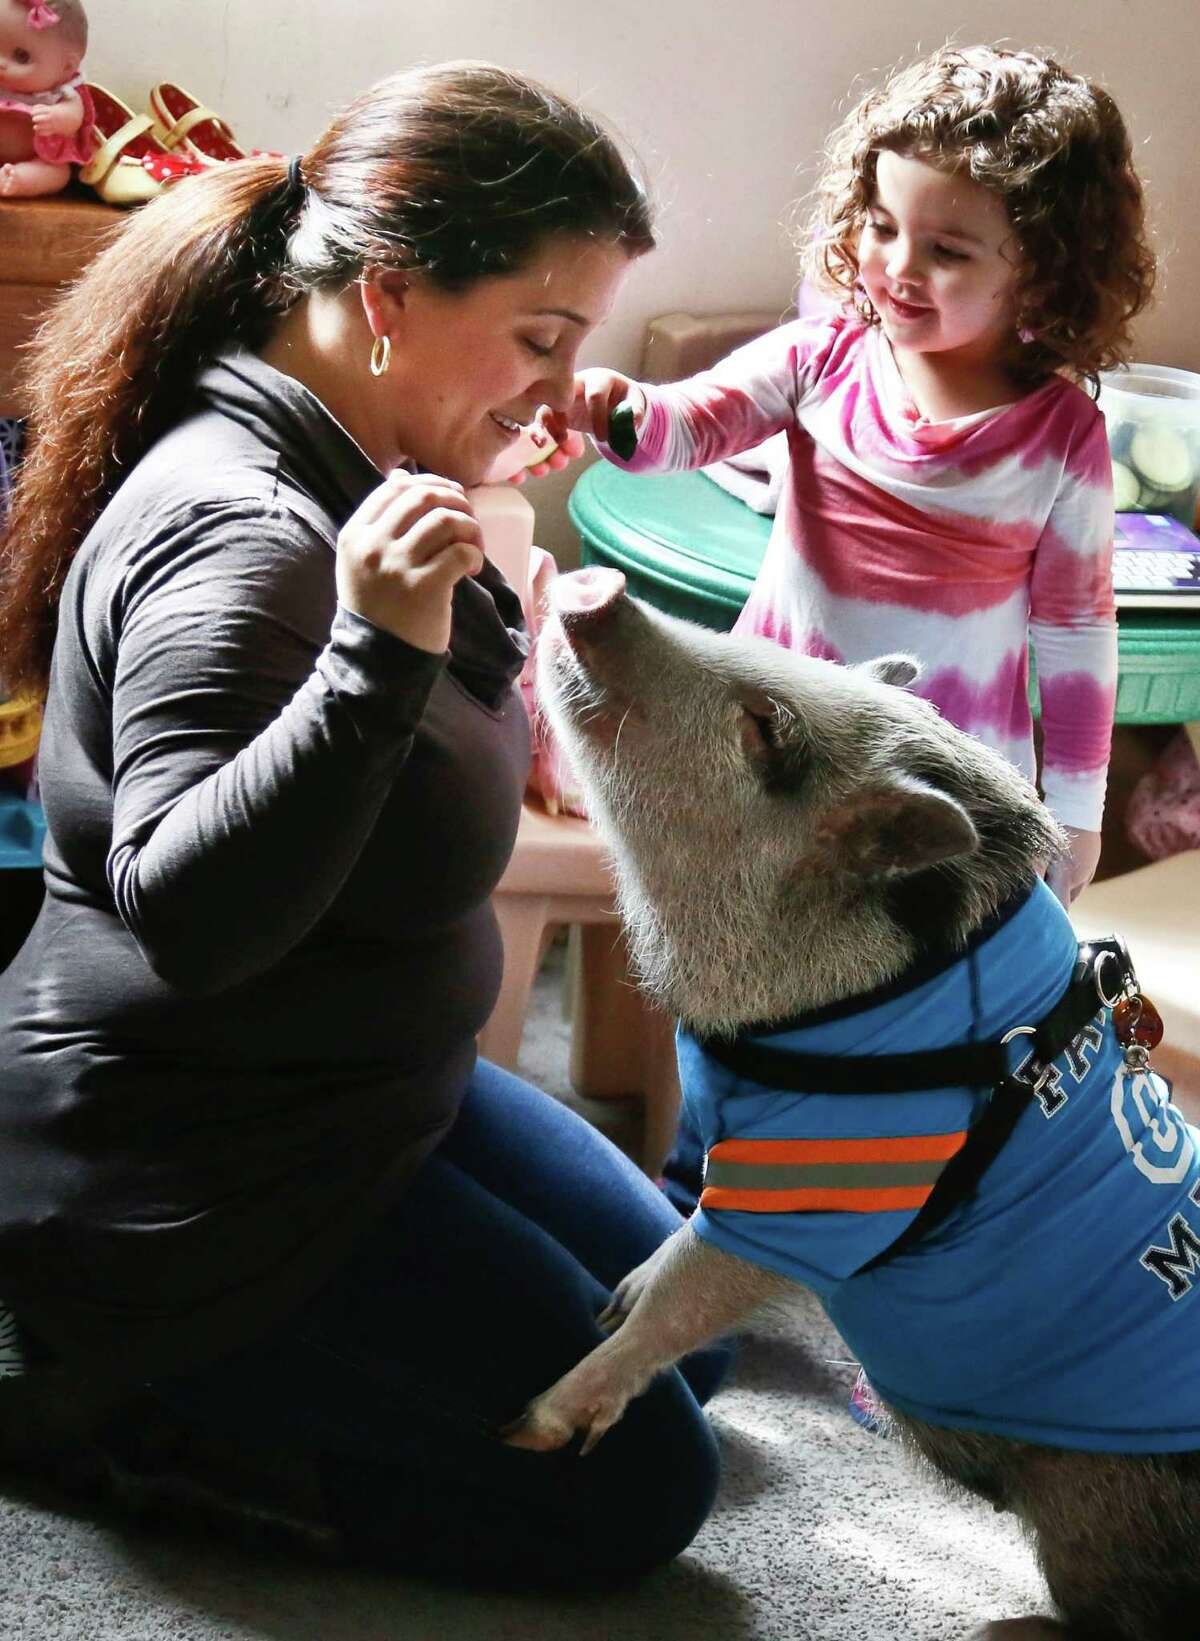 Danielle Forgione, left, and her daughter Olivia, 3, play with Petey, the family's pet pig, on Thursday, March 21, 2013, in the Queens borough of New York. Forgione is scrambling to sell her second-floor apartment after a neighbor complained about 1-year-old Petey the pig to the co-op board. In November and December she was issued city animal violations and in January was told by both the city and her management office that she needed to get rid of the pig.